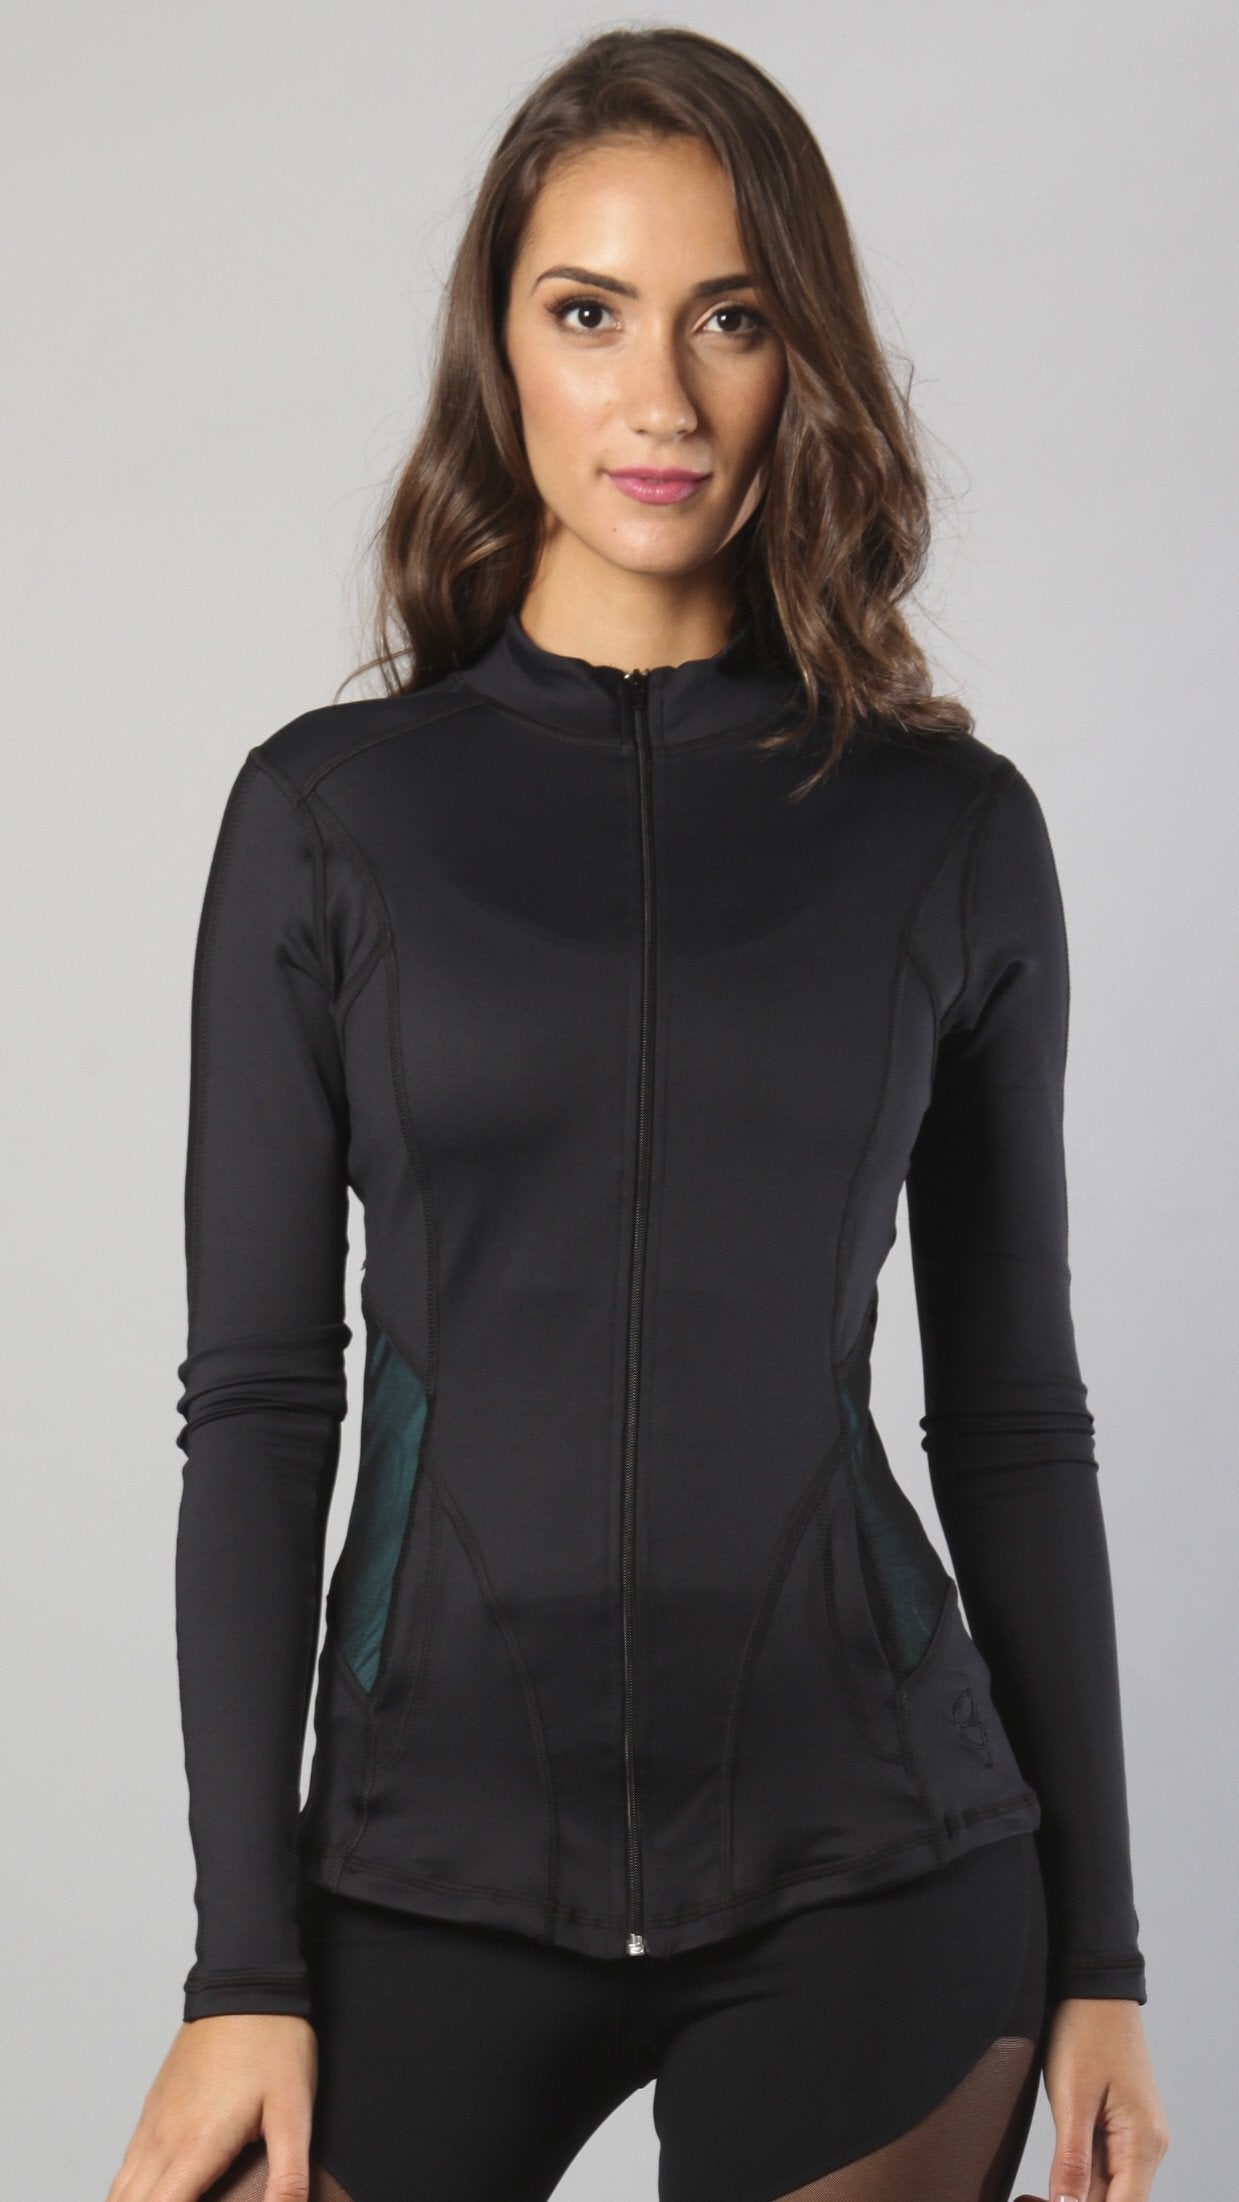 Designer Black Long Top with Long Sleeve J818 - Equilibrium Activewear - Image 1